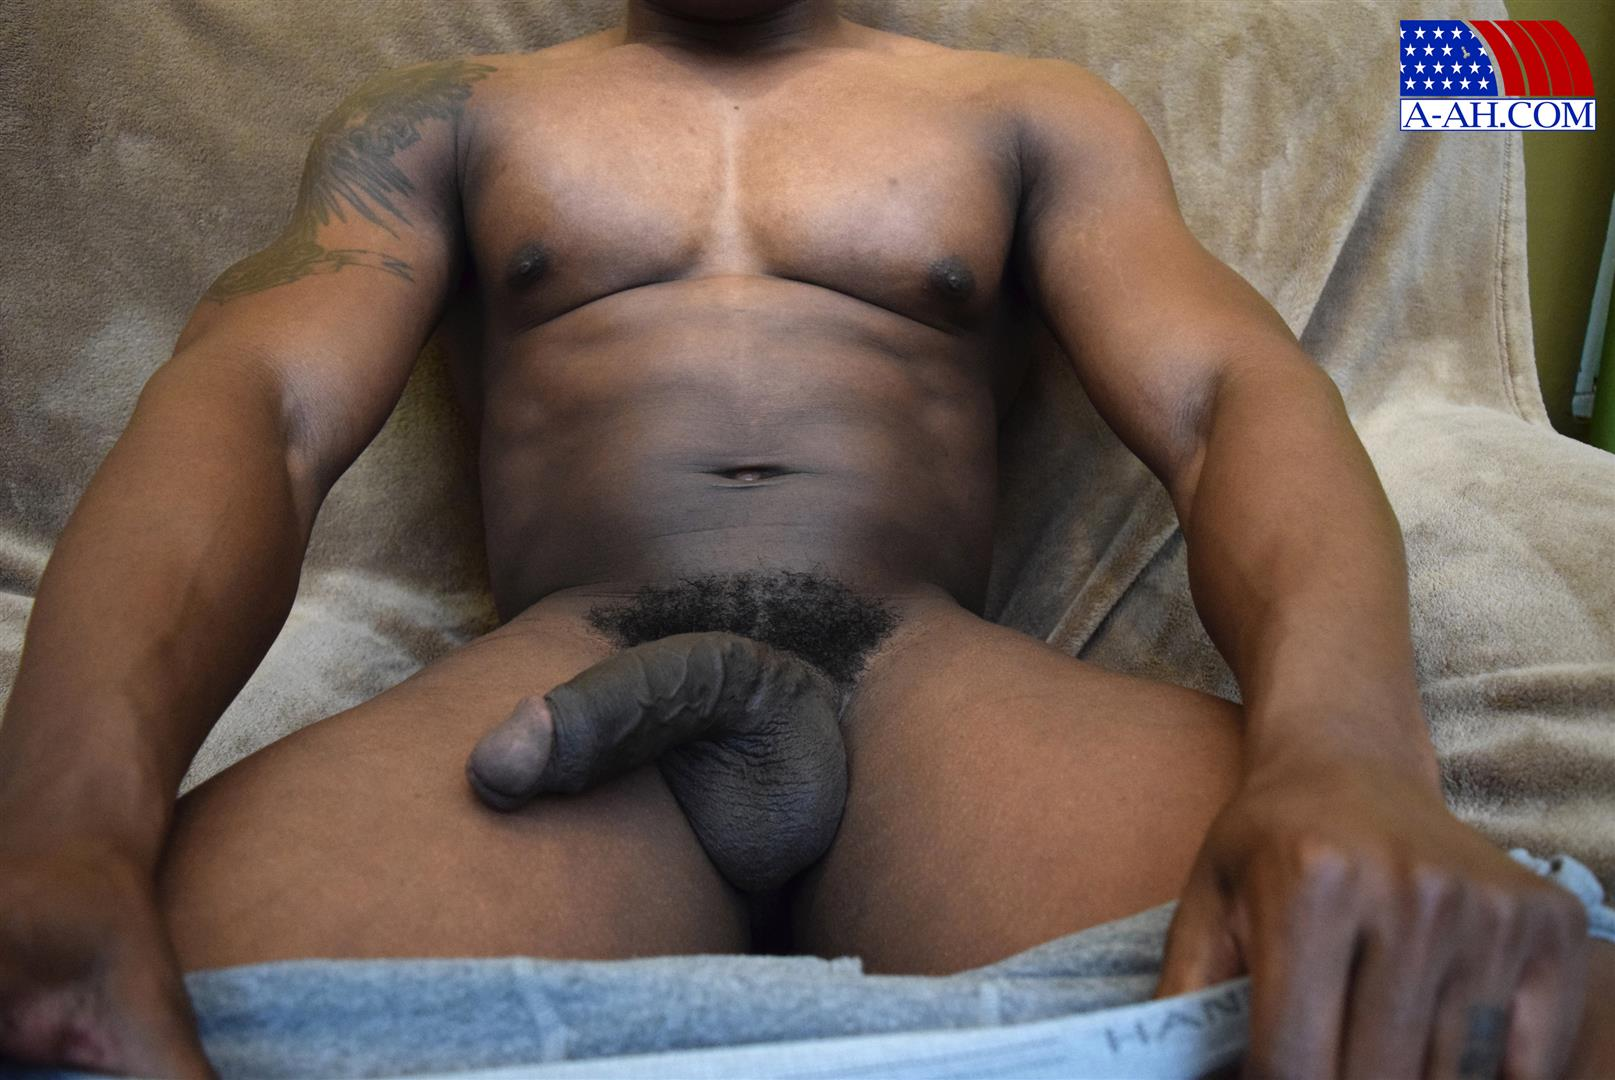 All-American-Heroes-Sean-Muscle-Navy-Petty-Officer-Jerking-Big-Black-Cock-Amateur-Gay-Porn-09 Big Muscular Black Navy Petty Officer Jerking His Big Black Cock